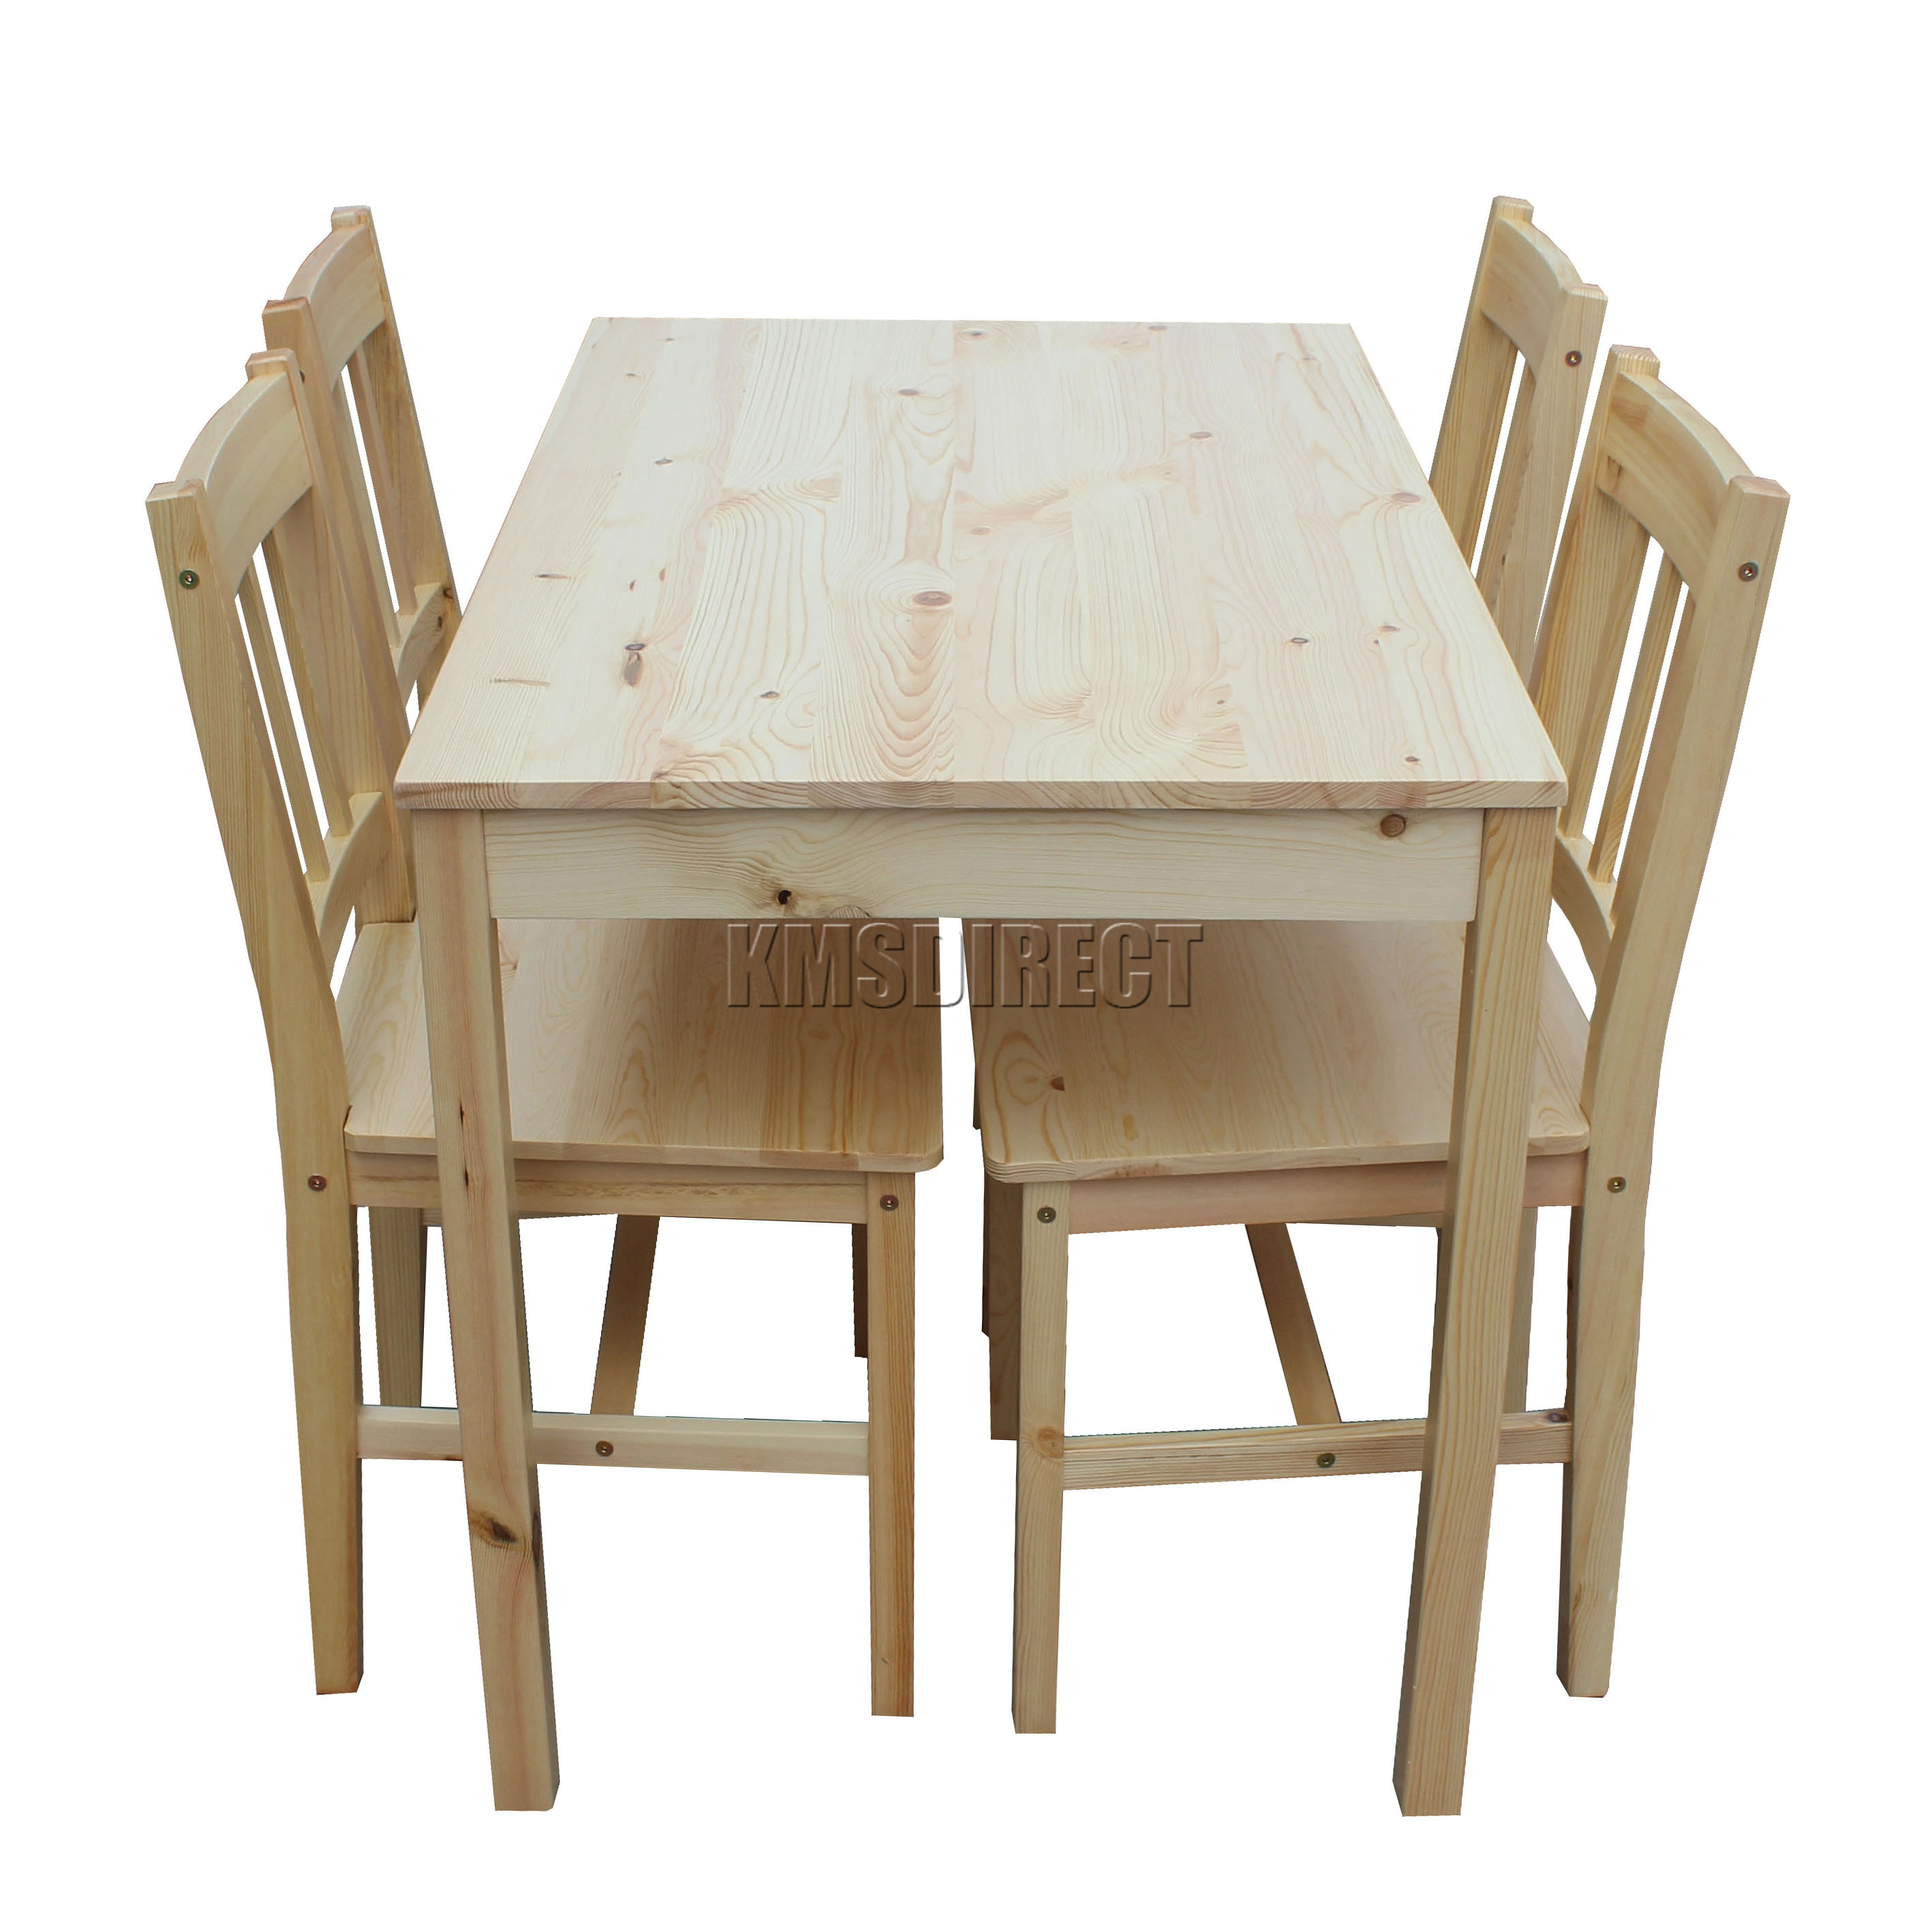 Foxhunter quality solid wooden dining table and 4 chairs set kitchen ds02 pine ebay Wooden dining table and chairs